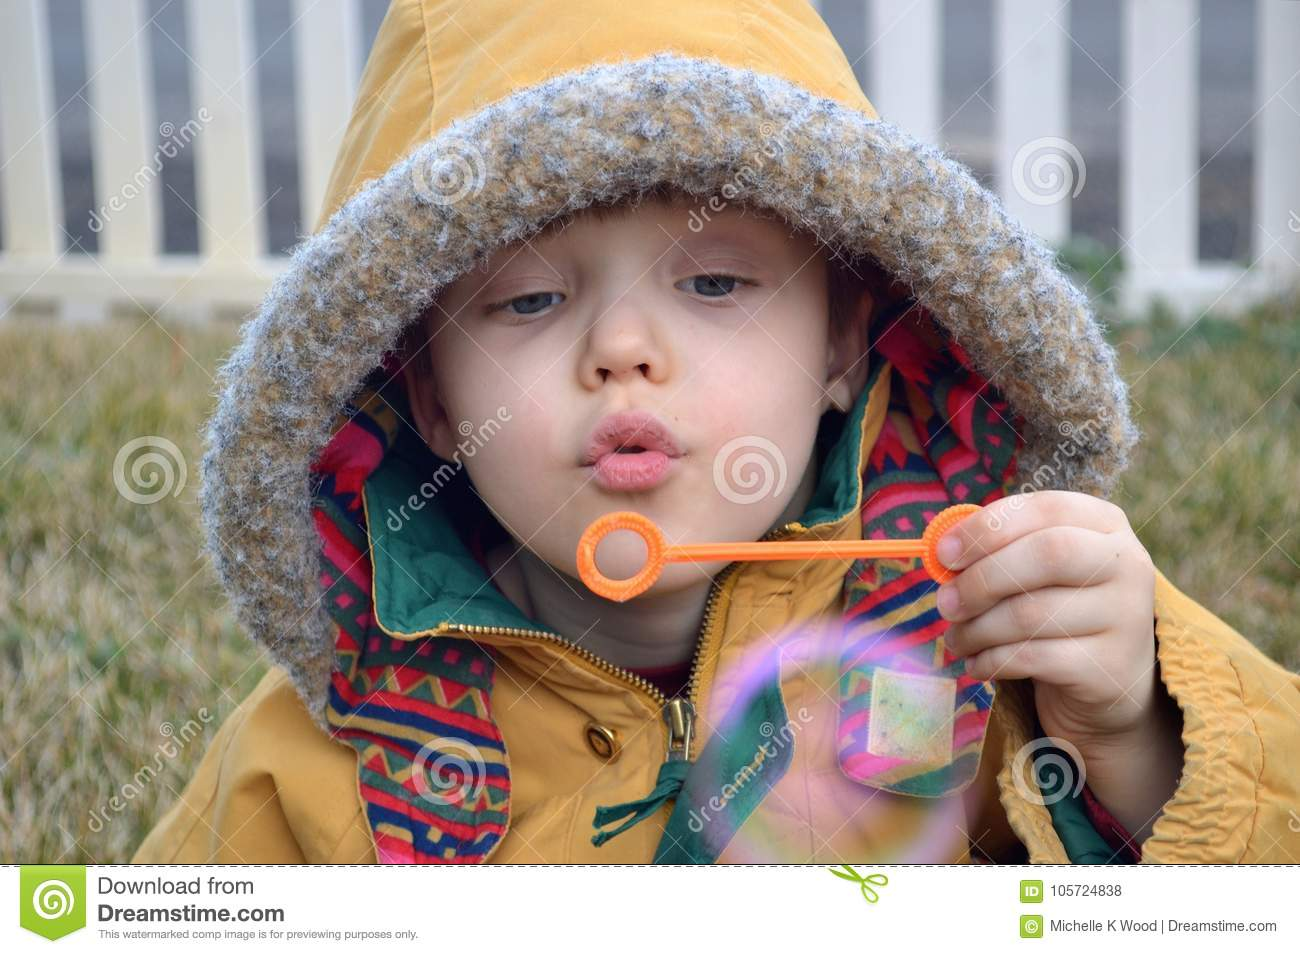 Boy blowing bubbles in the winter